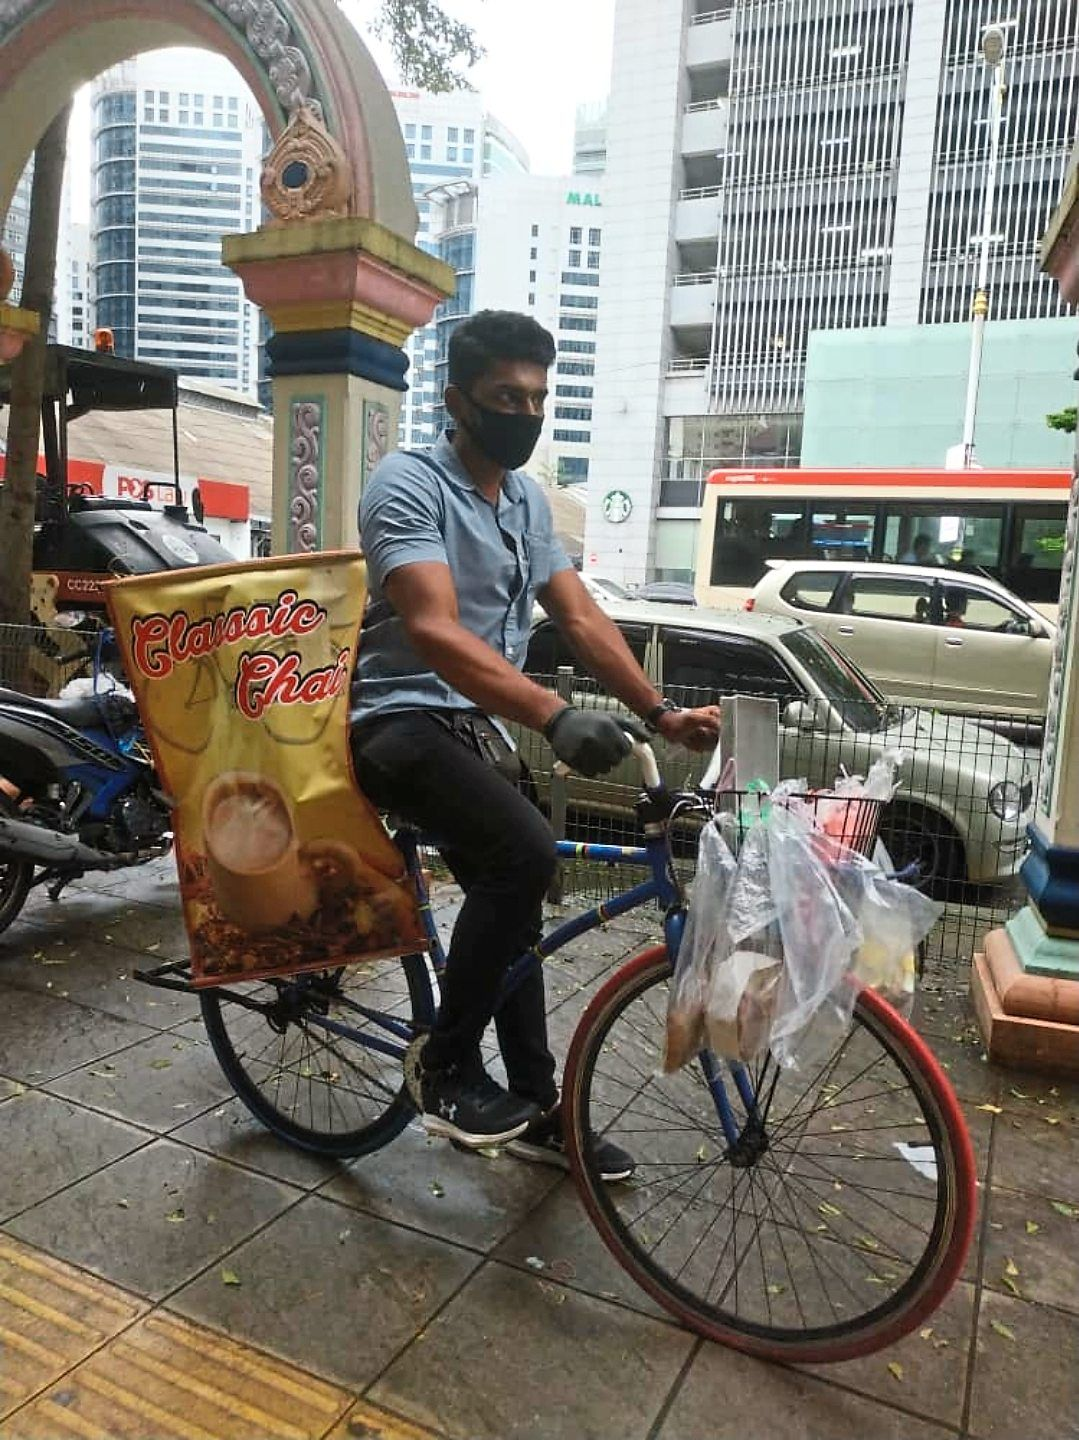 Engineering graduate Kavievanan decided to sell masala tea on wheels after he faced difficulties in obtaining a job during the pandemic.